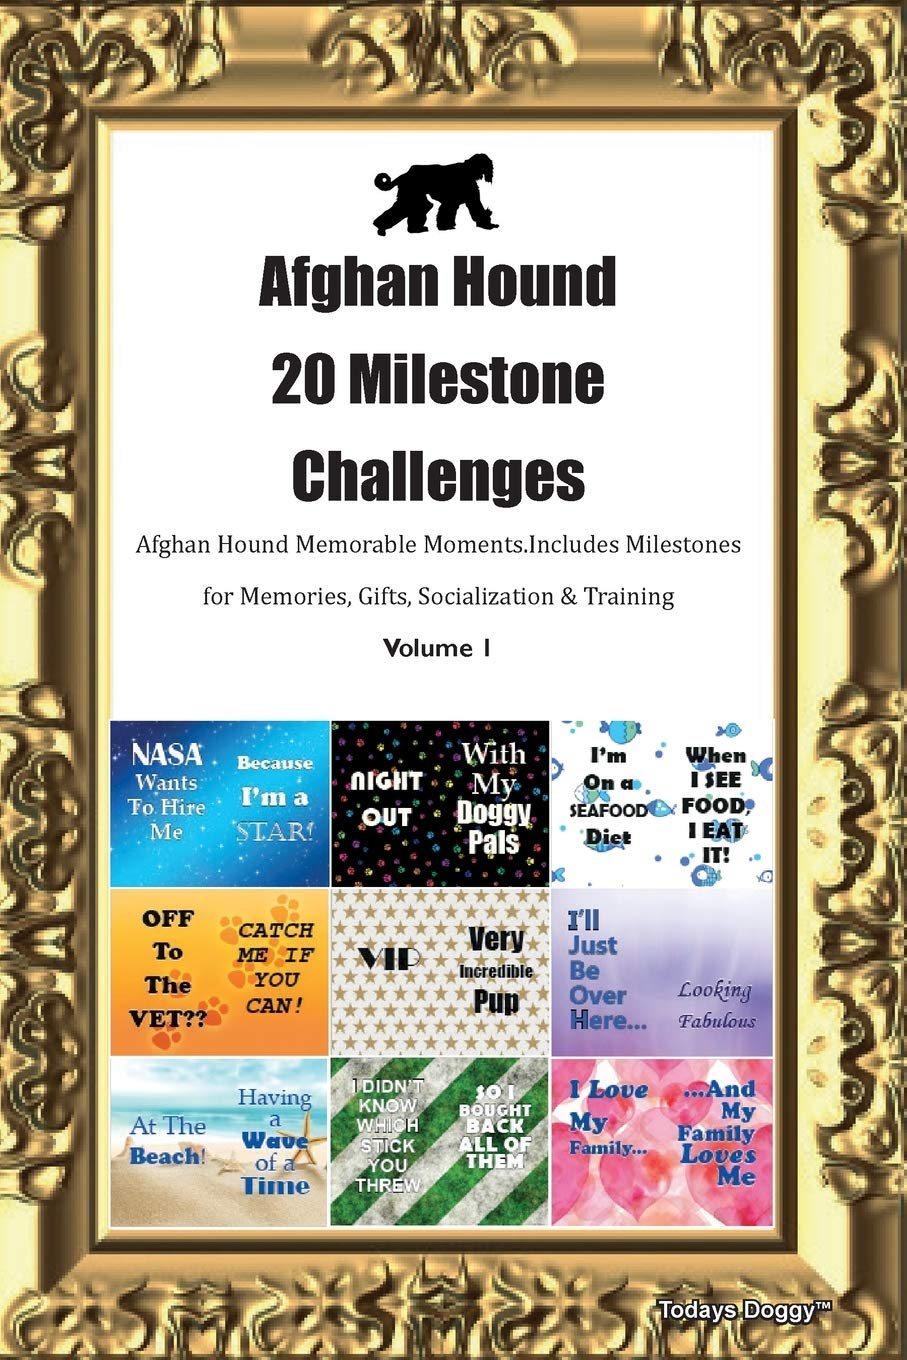 Afghan Hound 20 Milestone Challenges Afghan Hound Memorable Moments.Includes Milestones for Memories, Gifts…